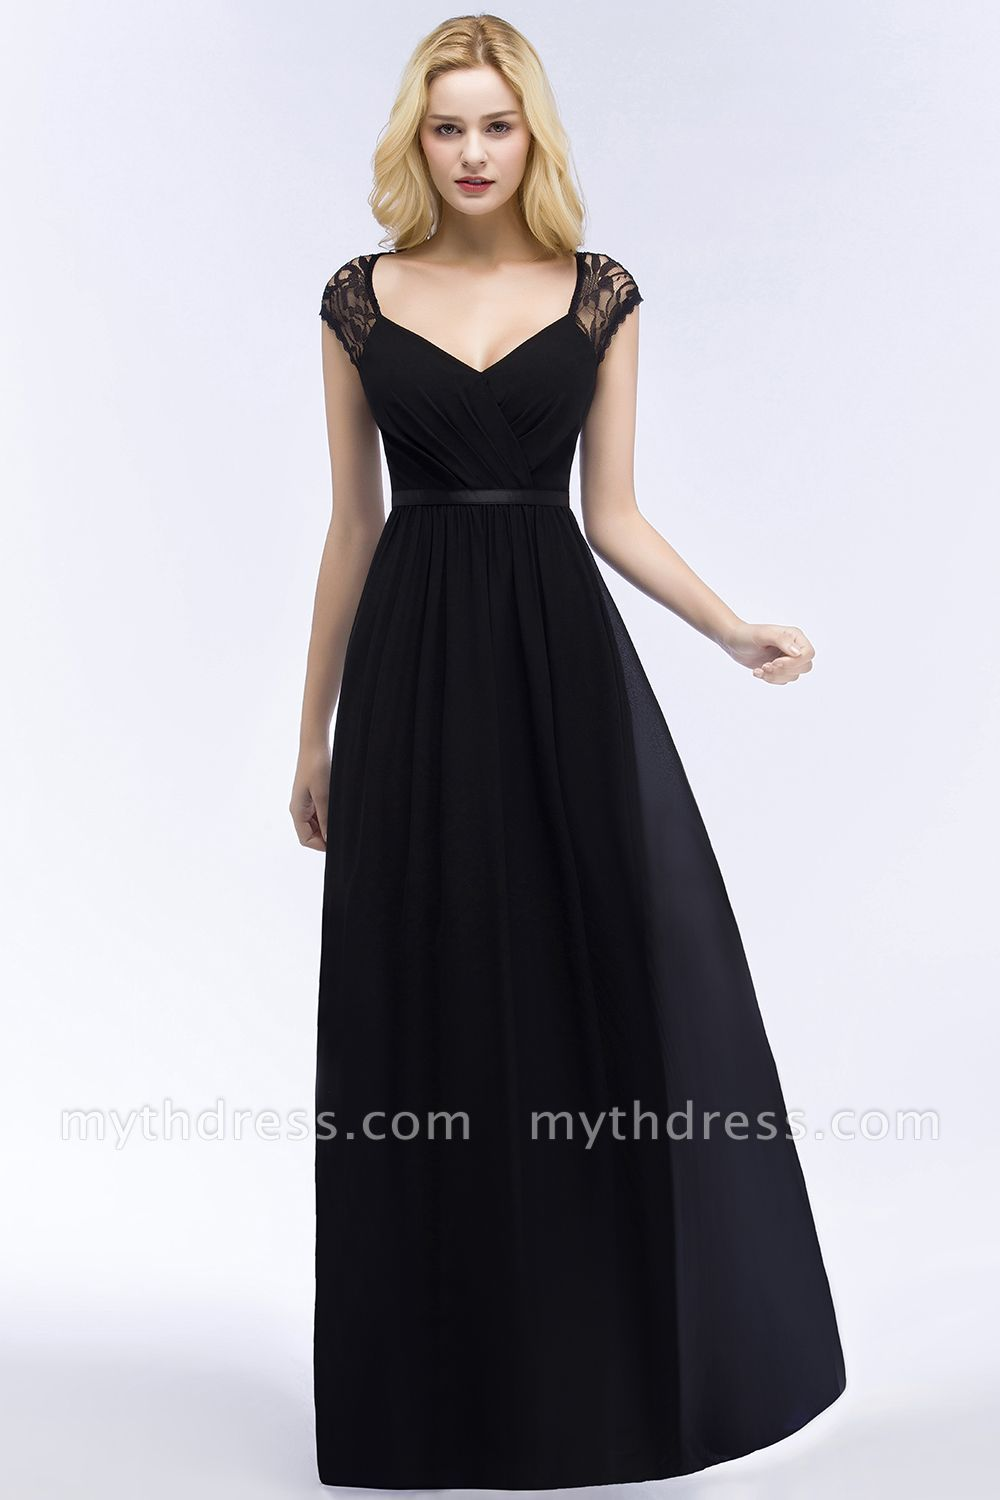 Affordable Summer Long Lace Chiffon Wedding Bridesmaid Dresses With Sash Ashley In 2020 Cheap Bridesmaid Dresses Black Bridesmaid Dresses Bridesmaid Dresses